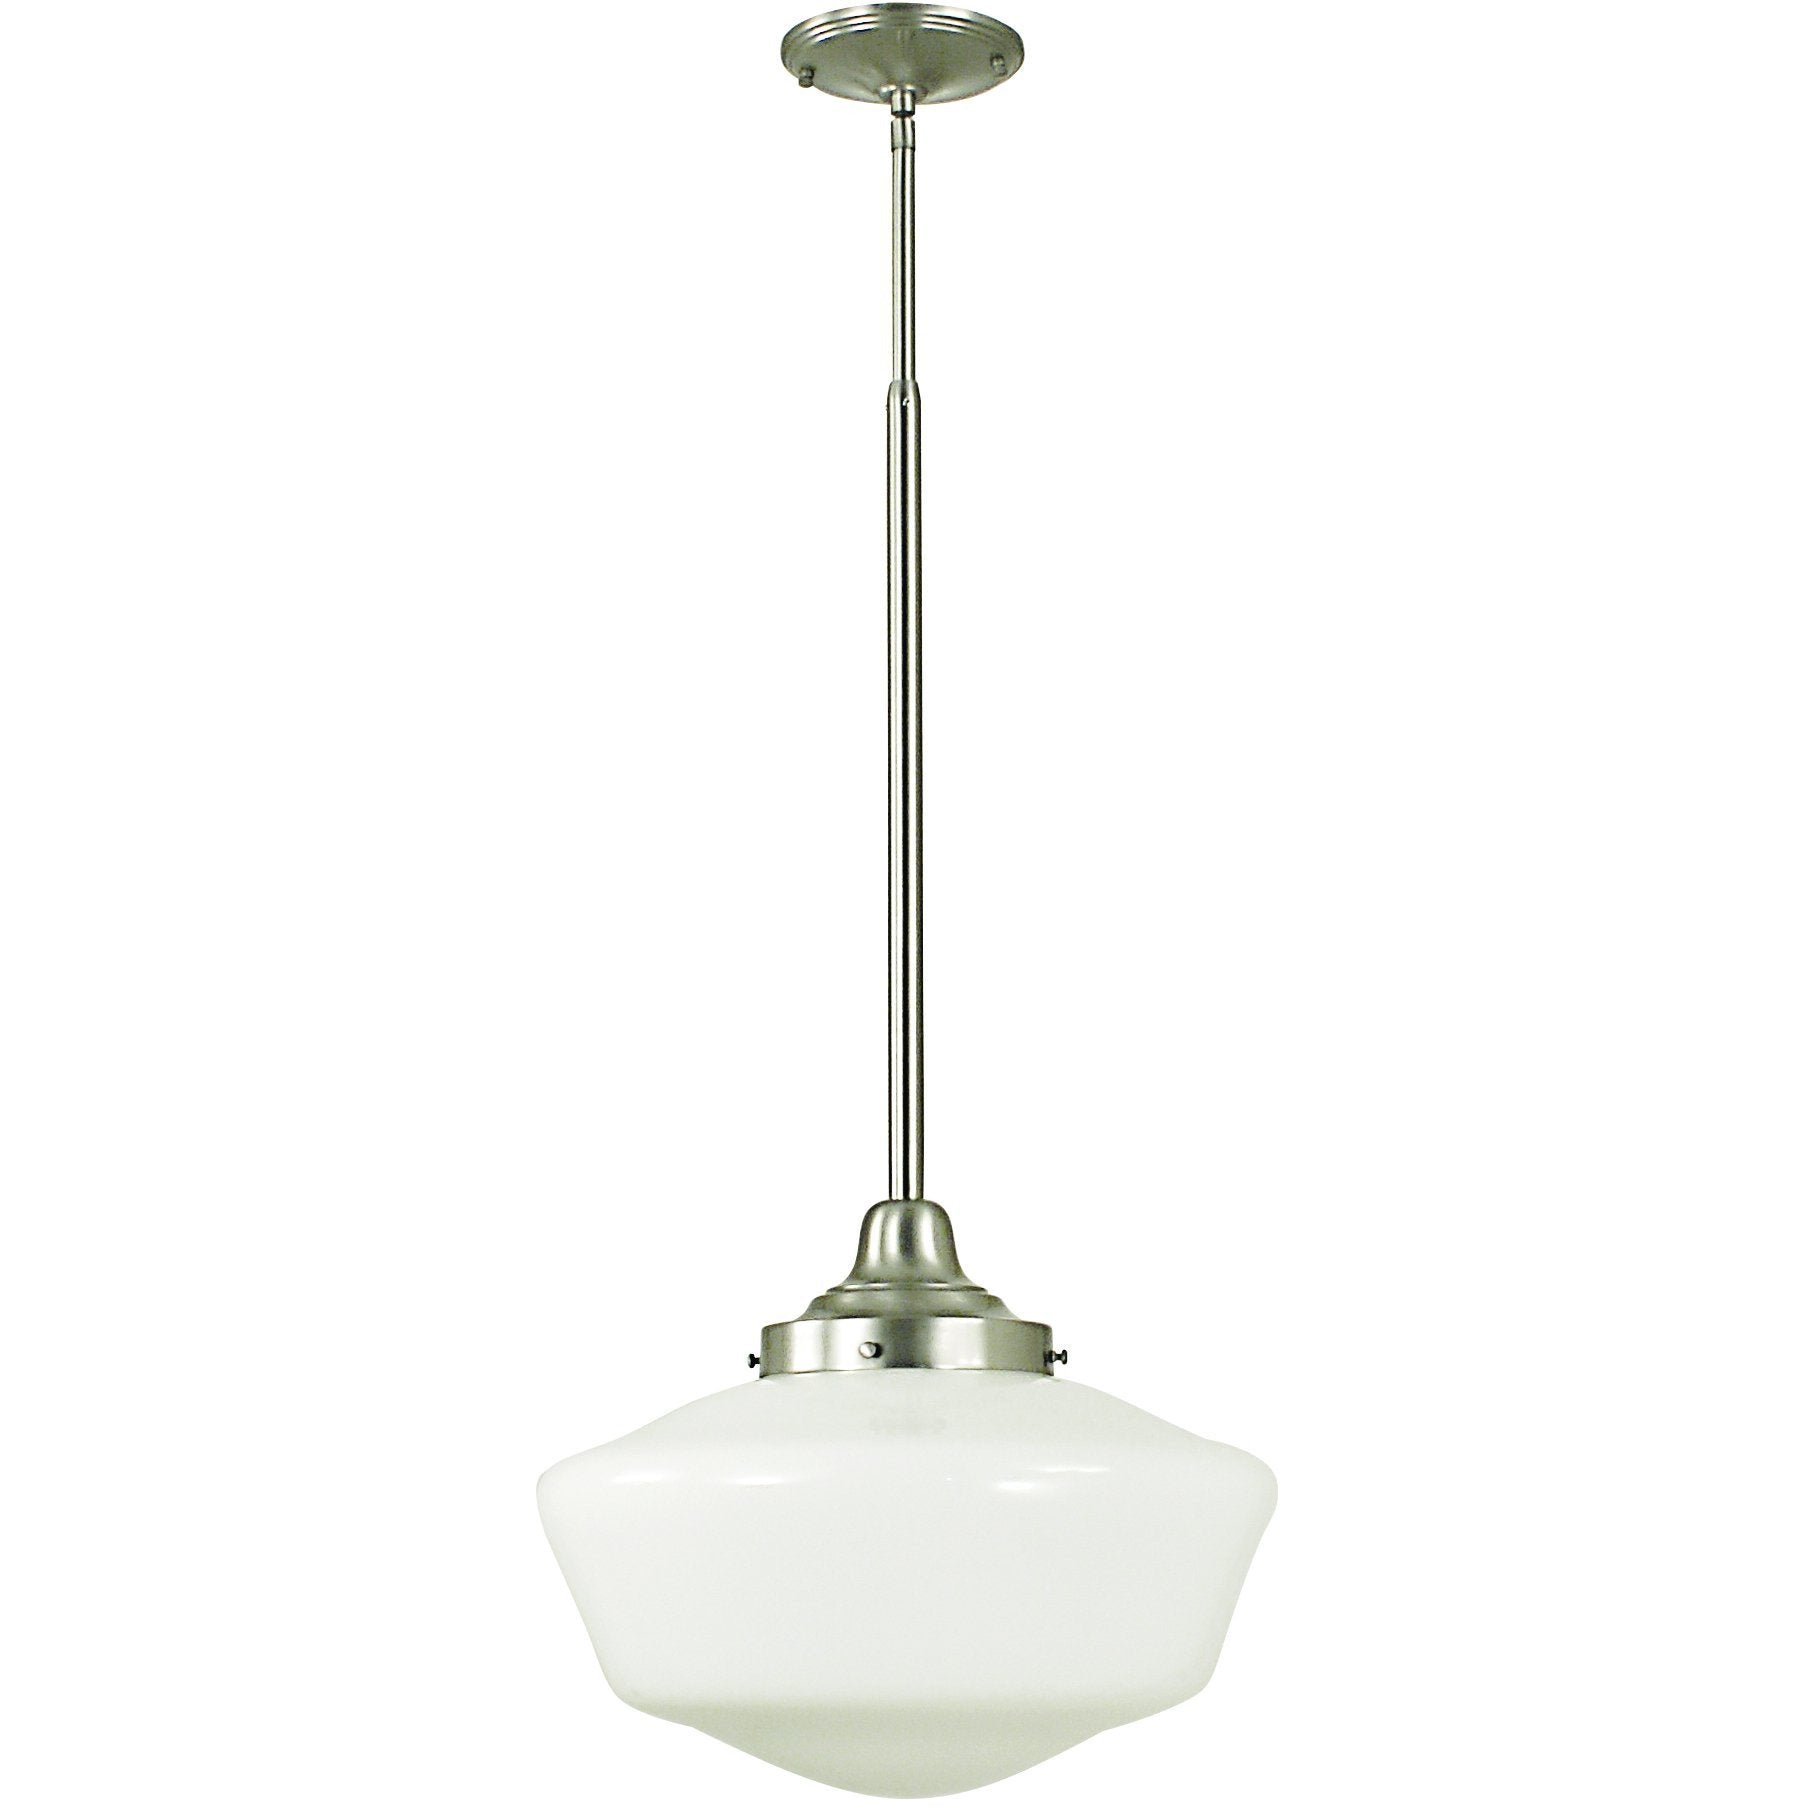 Framburg Pendants Brushed Nickel 1-Light Brushed Nickel Taylor Pendant by Framburg 2559